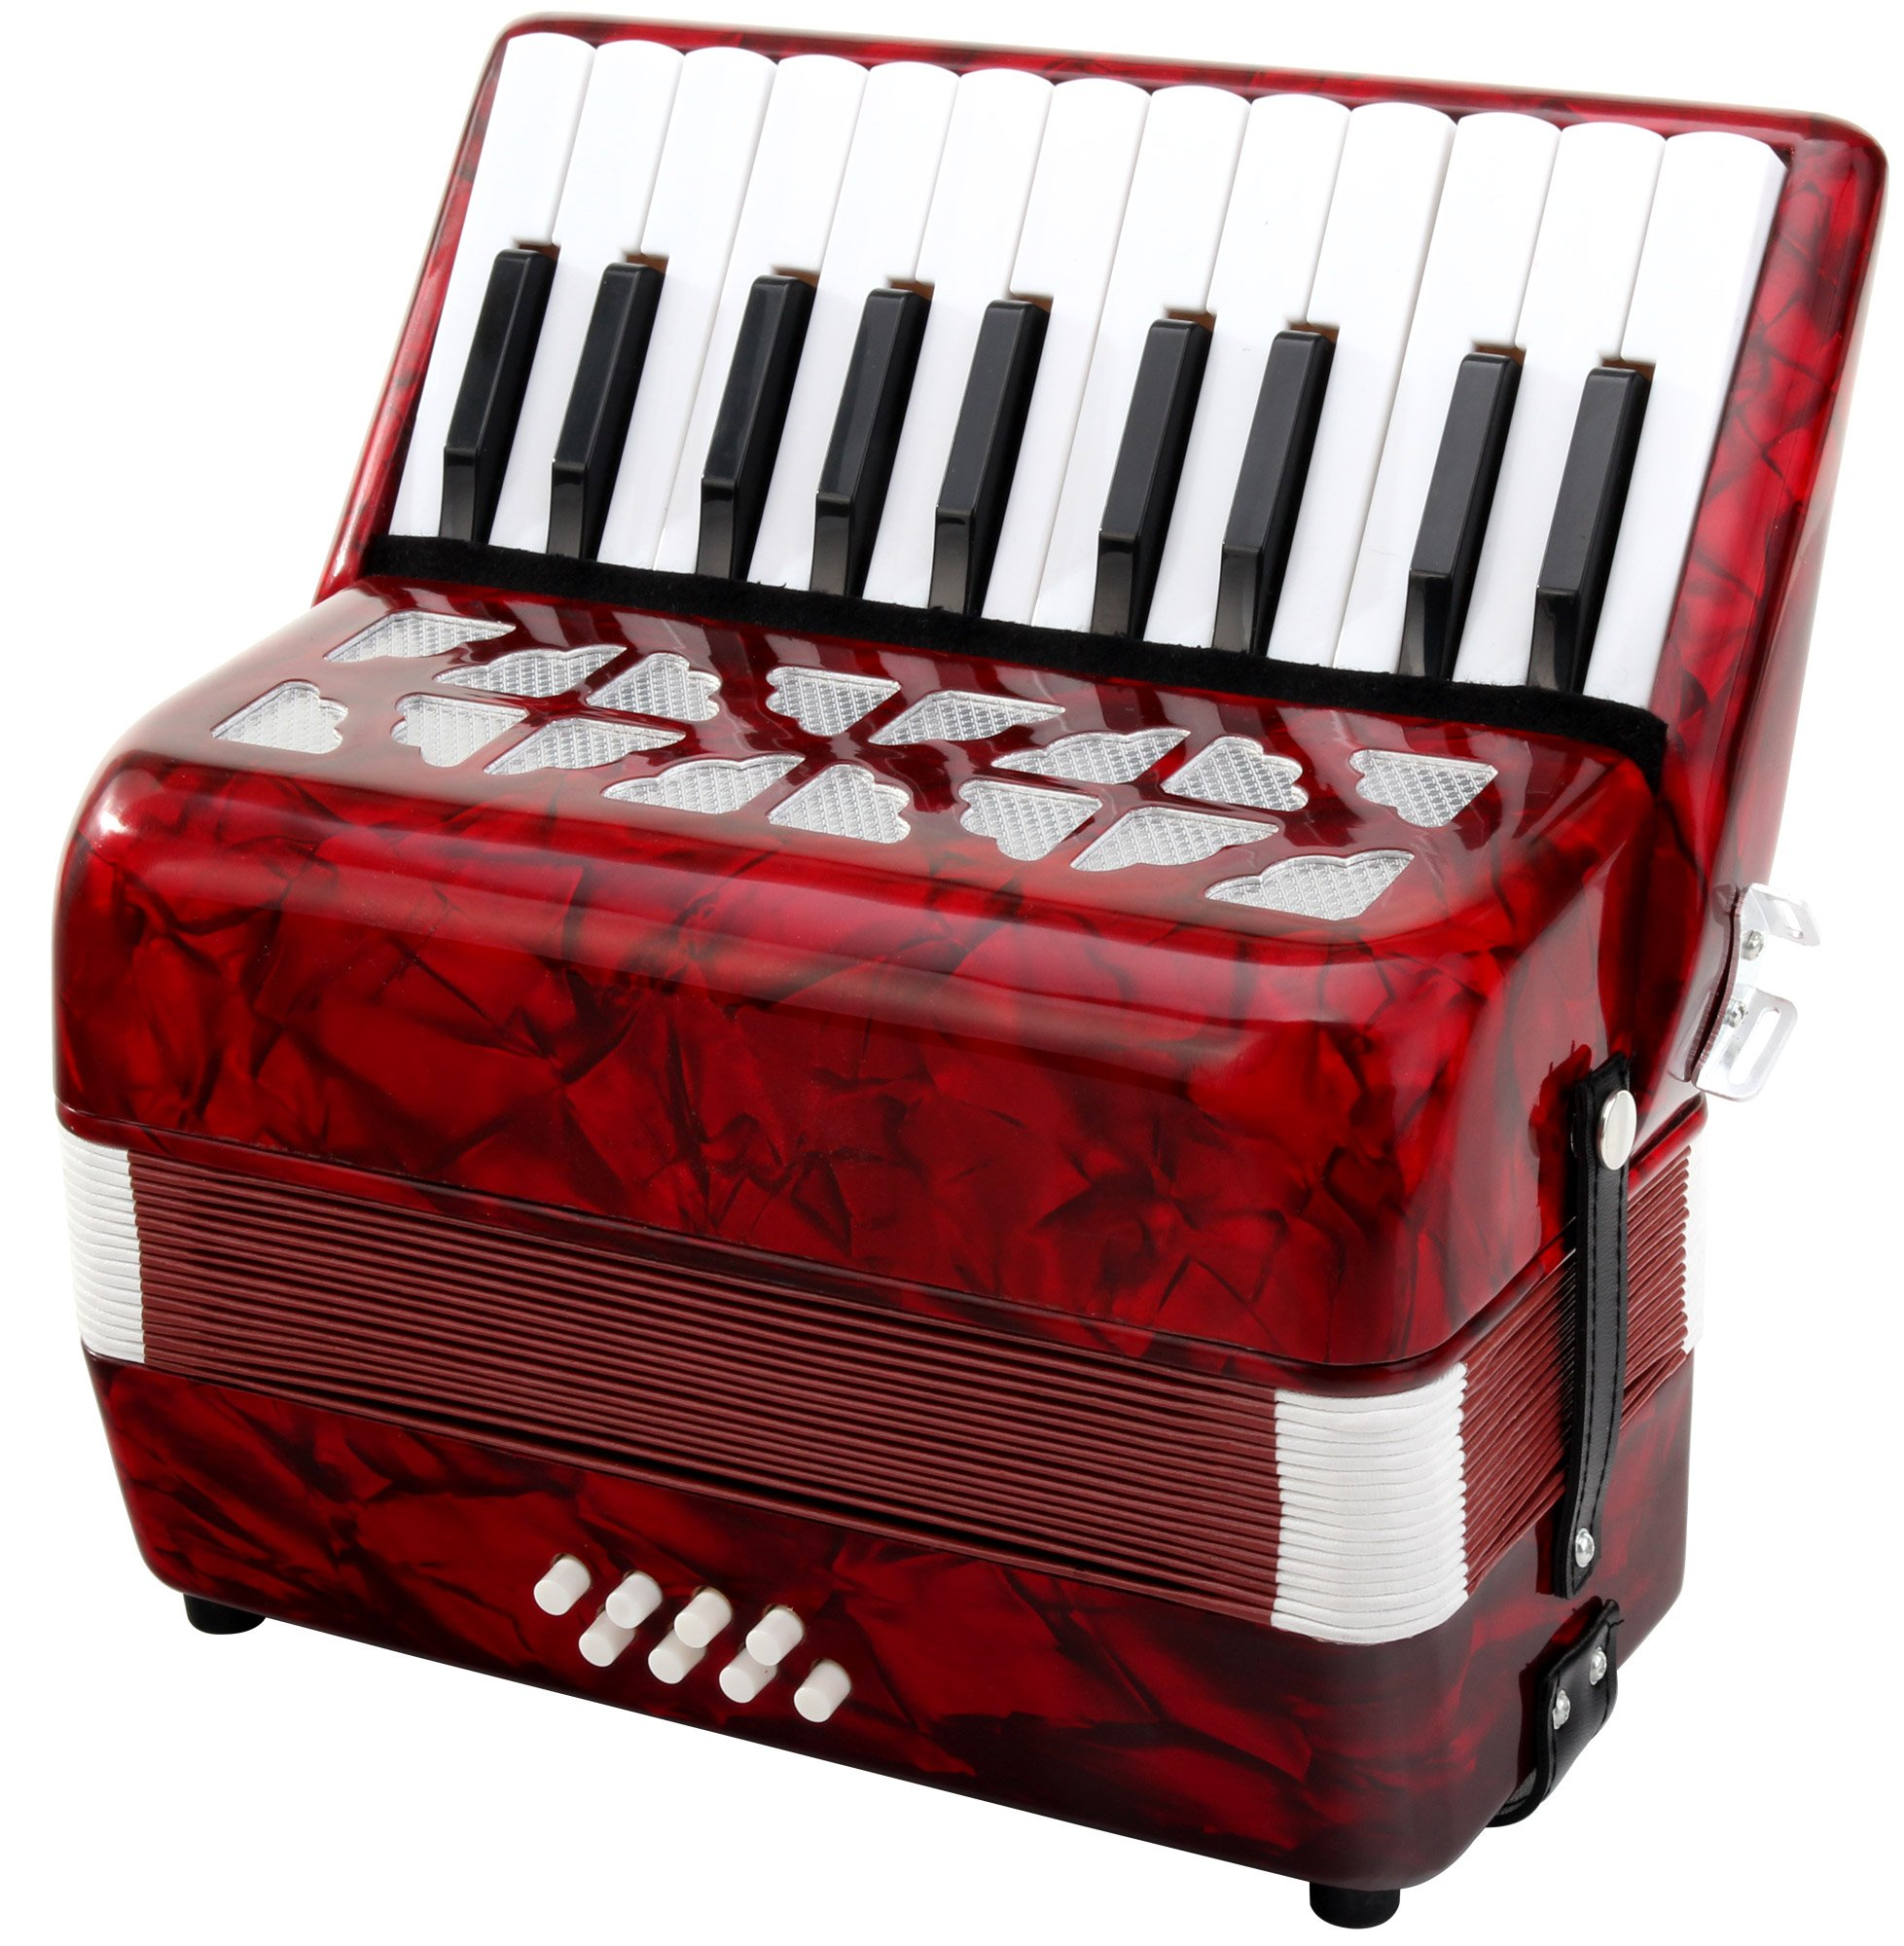 Classic Cantabile Secondo Junior 8 Bass Accordion 22 Treble Keys Eight Bass Keys with Strap and Gig Bag Red by Classic Cantabile